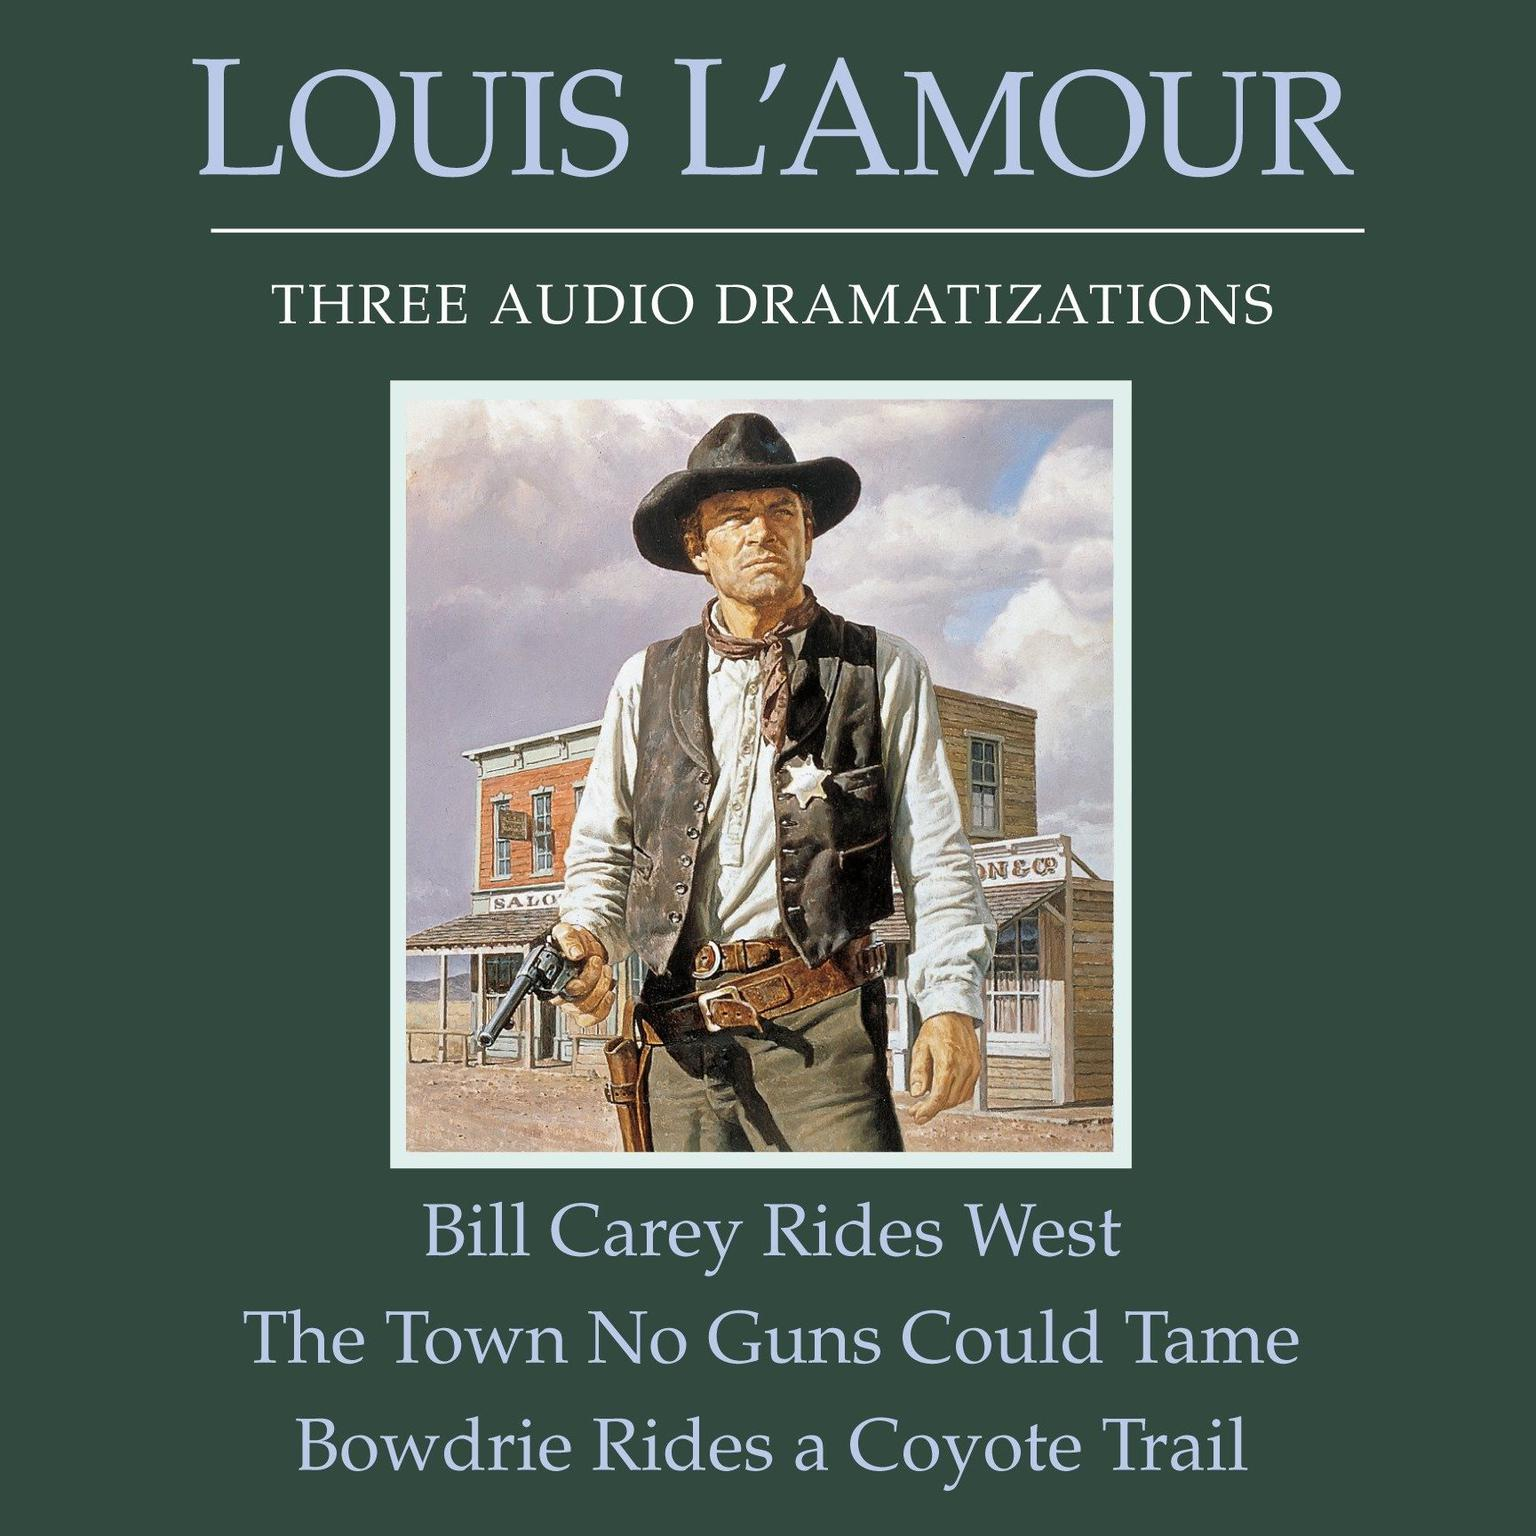 Printable Bill Carey Rides West, The Town No Guns Could Tame, Bowdrie Rides a Coyote Trail Audiobook Cover Art